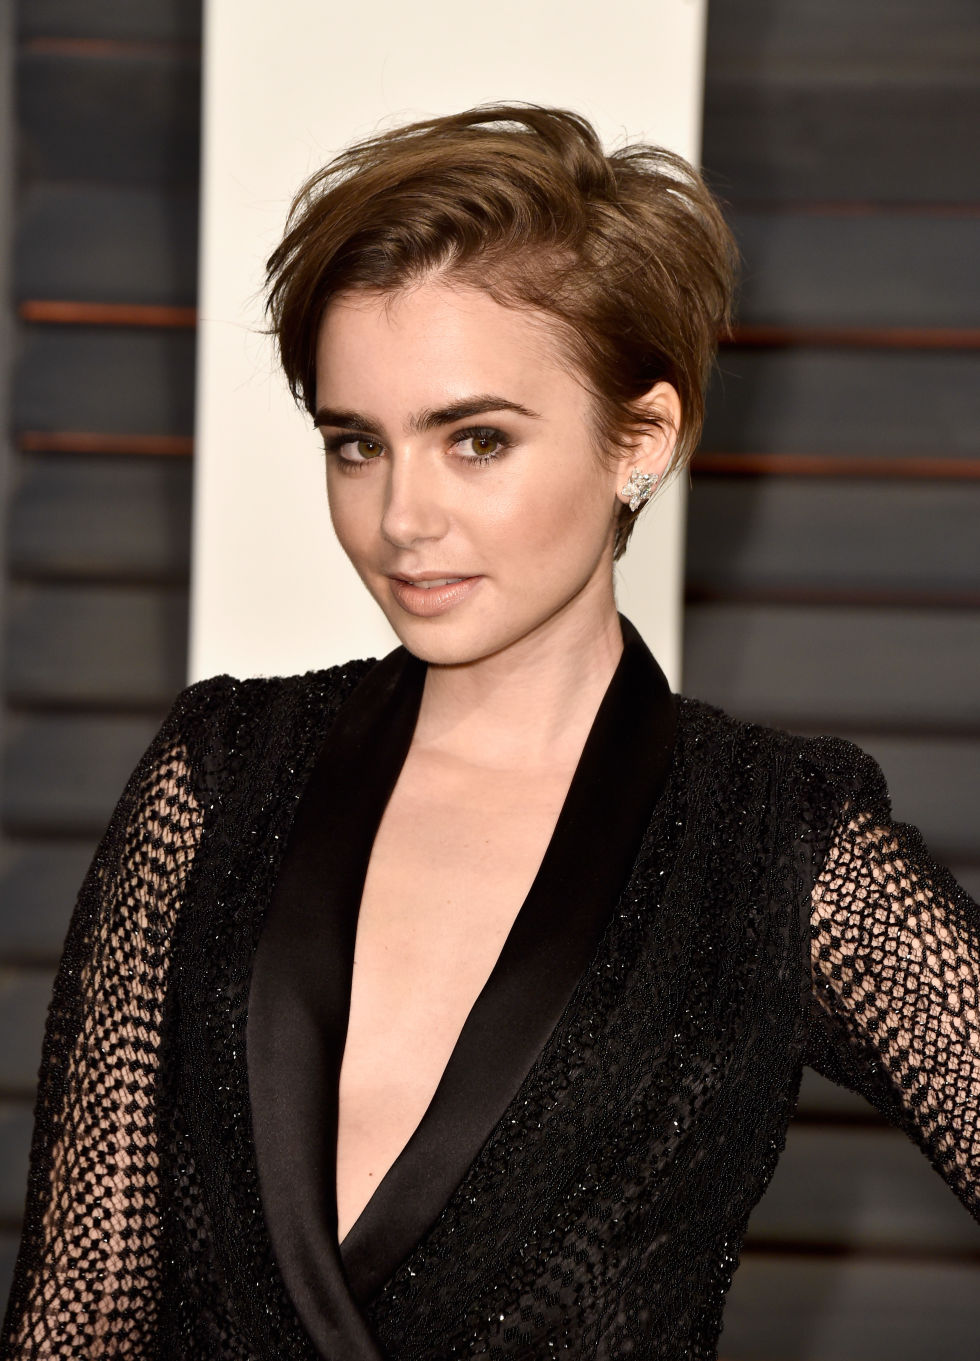 From lily collins hairstyles 2017 best haircuts and hair colors - From Lily Collins Hairstyles 2017 Best Haircuts And Hair Colors 15